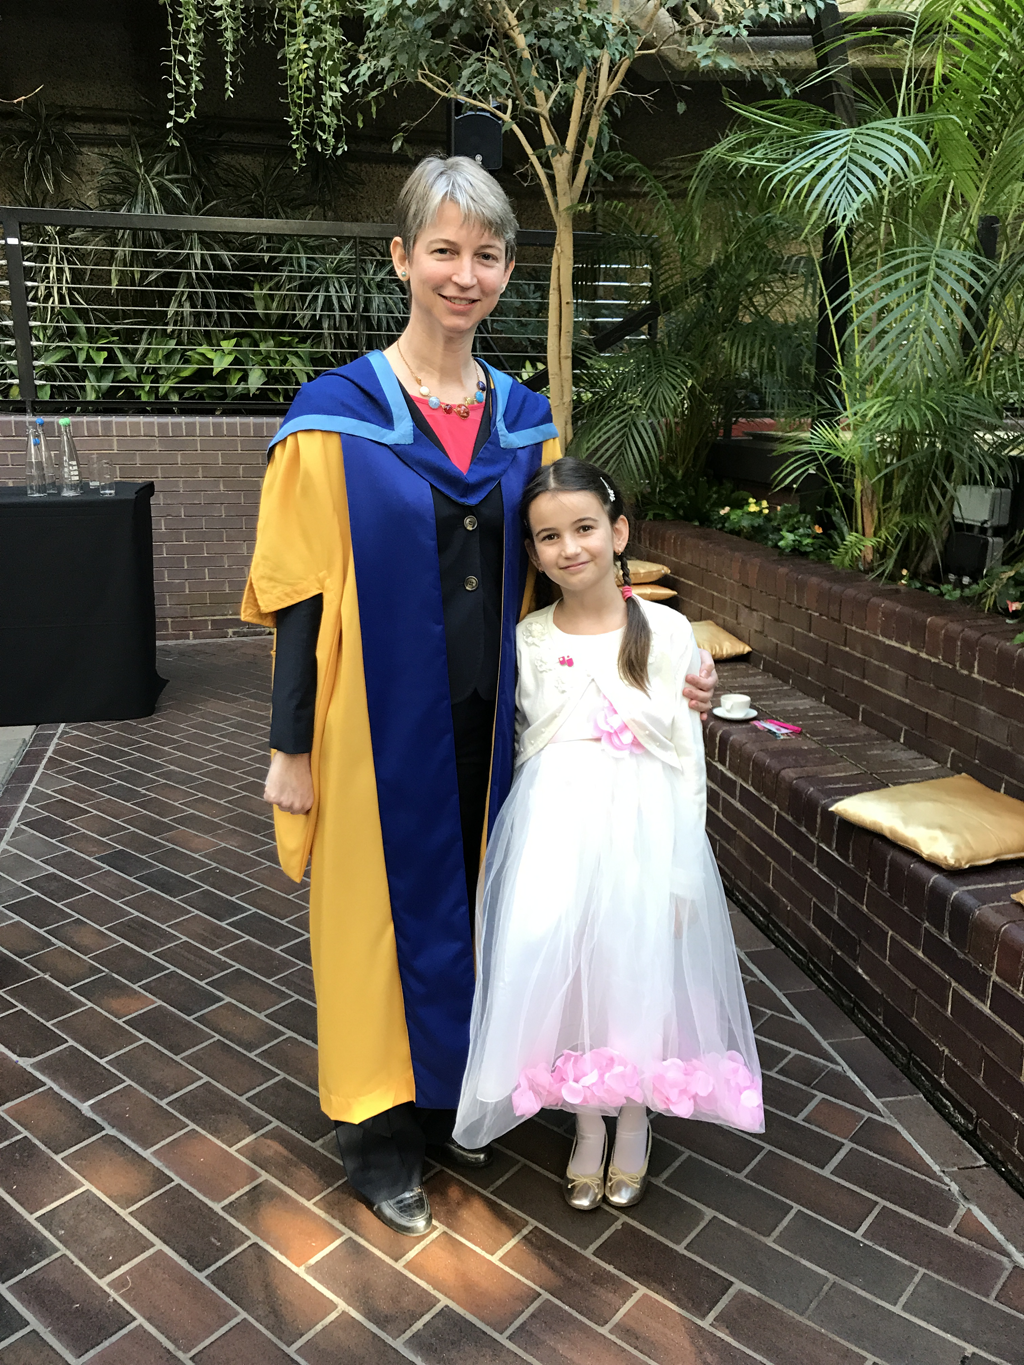 emily lakdawalla and daughter at the open university